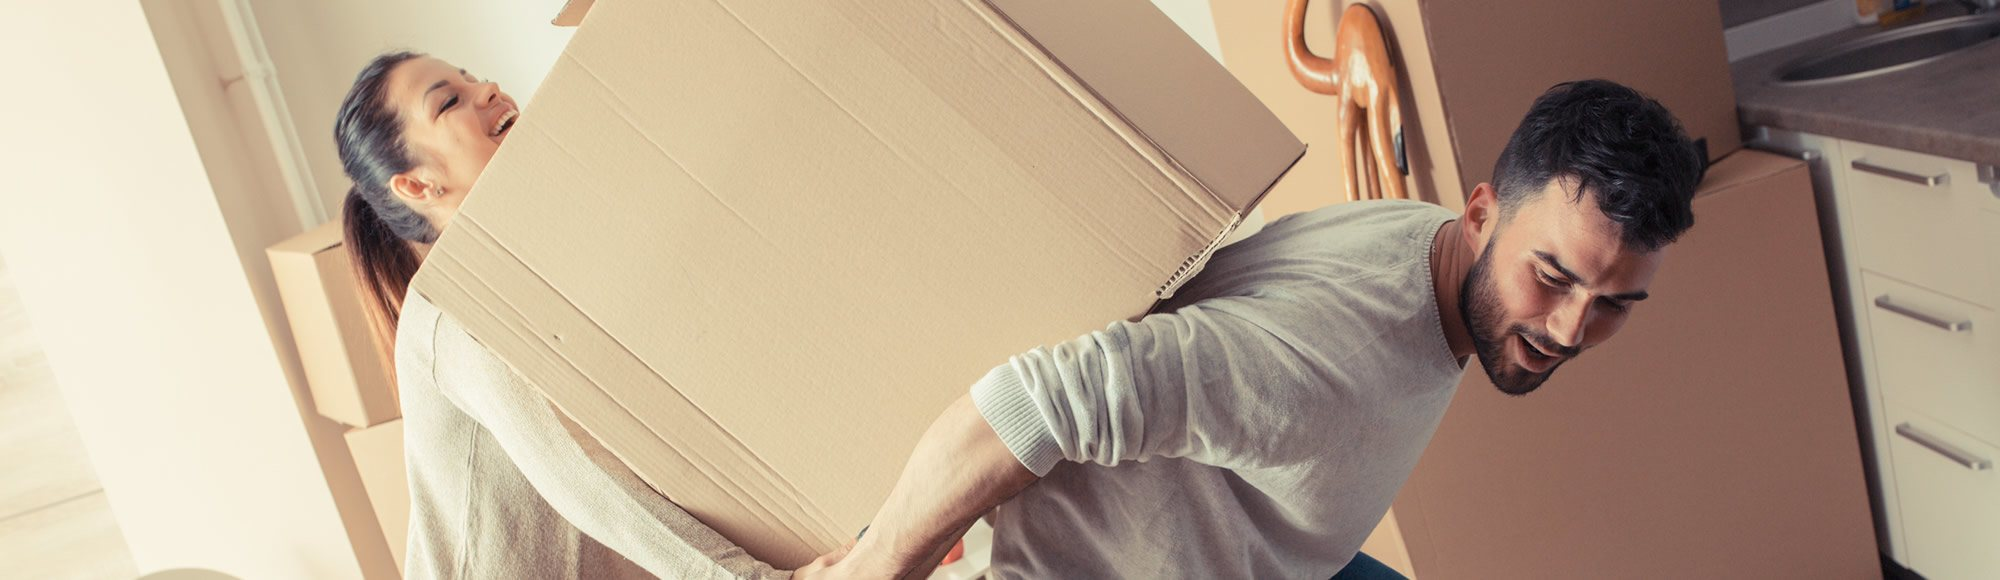 Knowing your needs to rent movers and storage companies